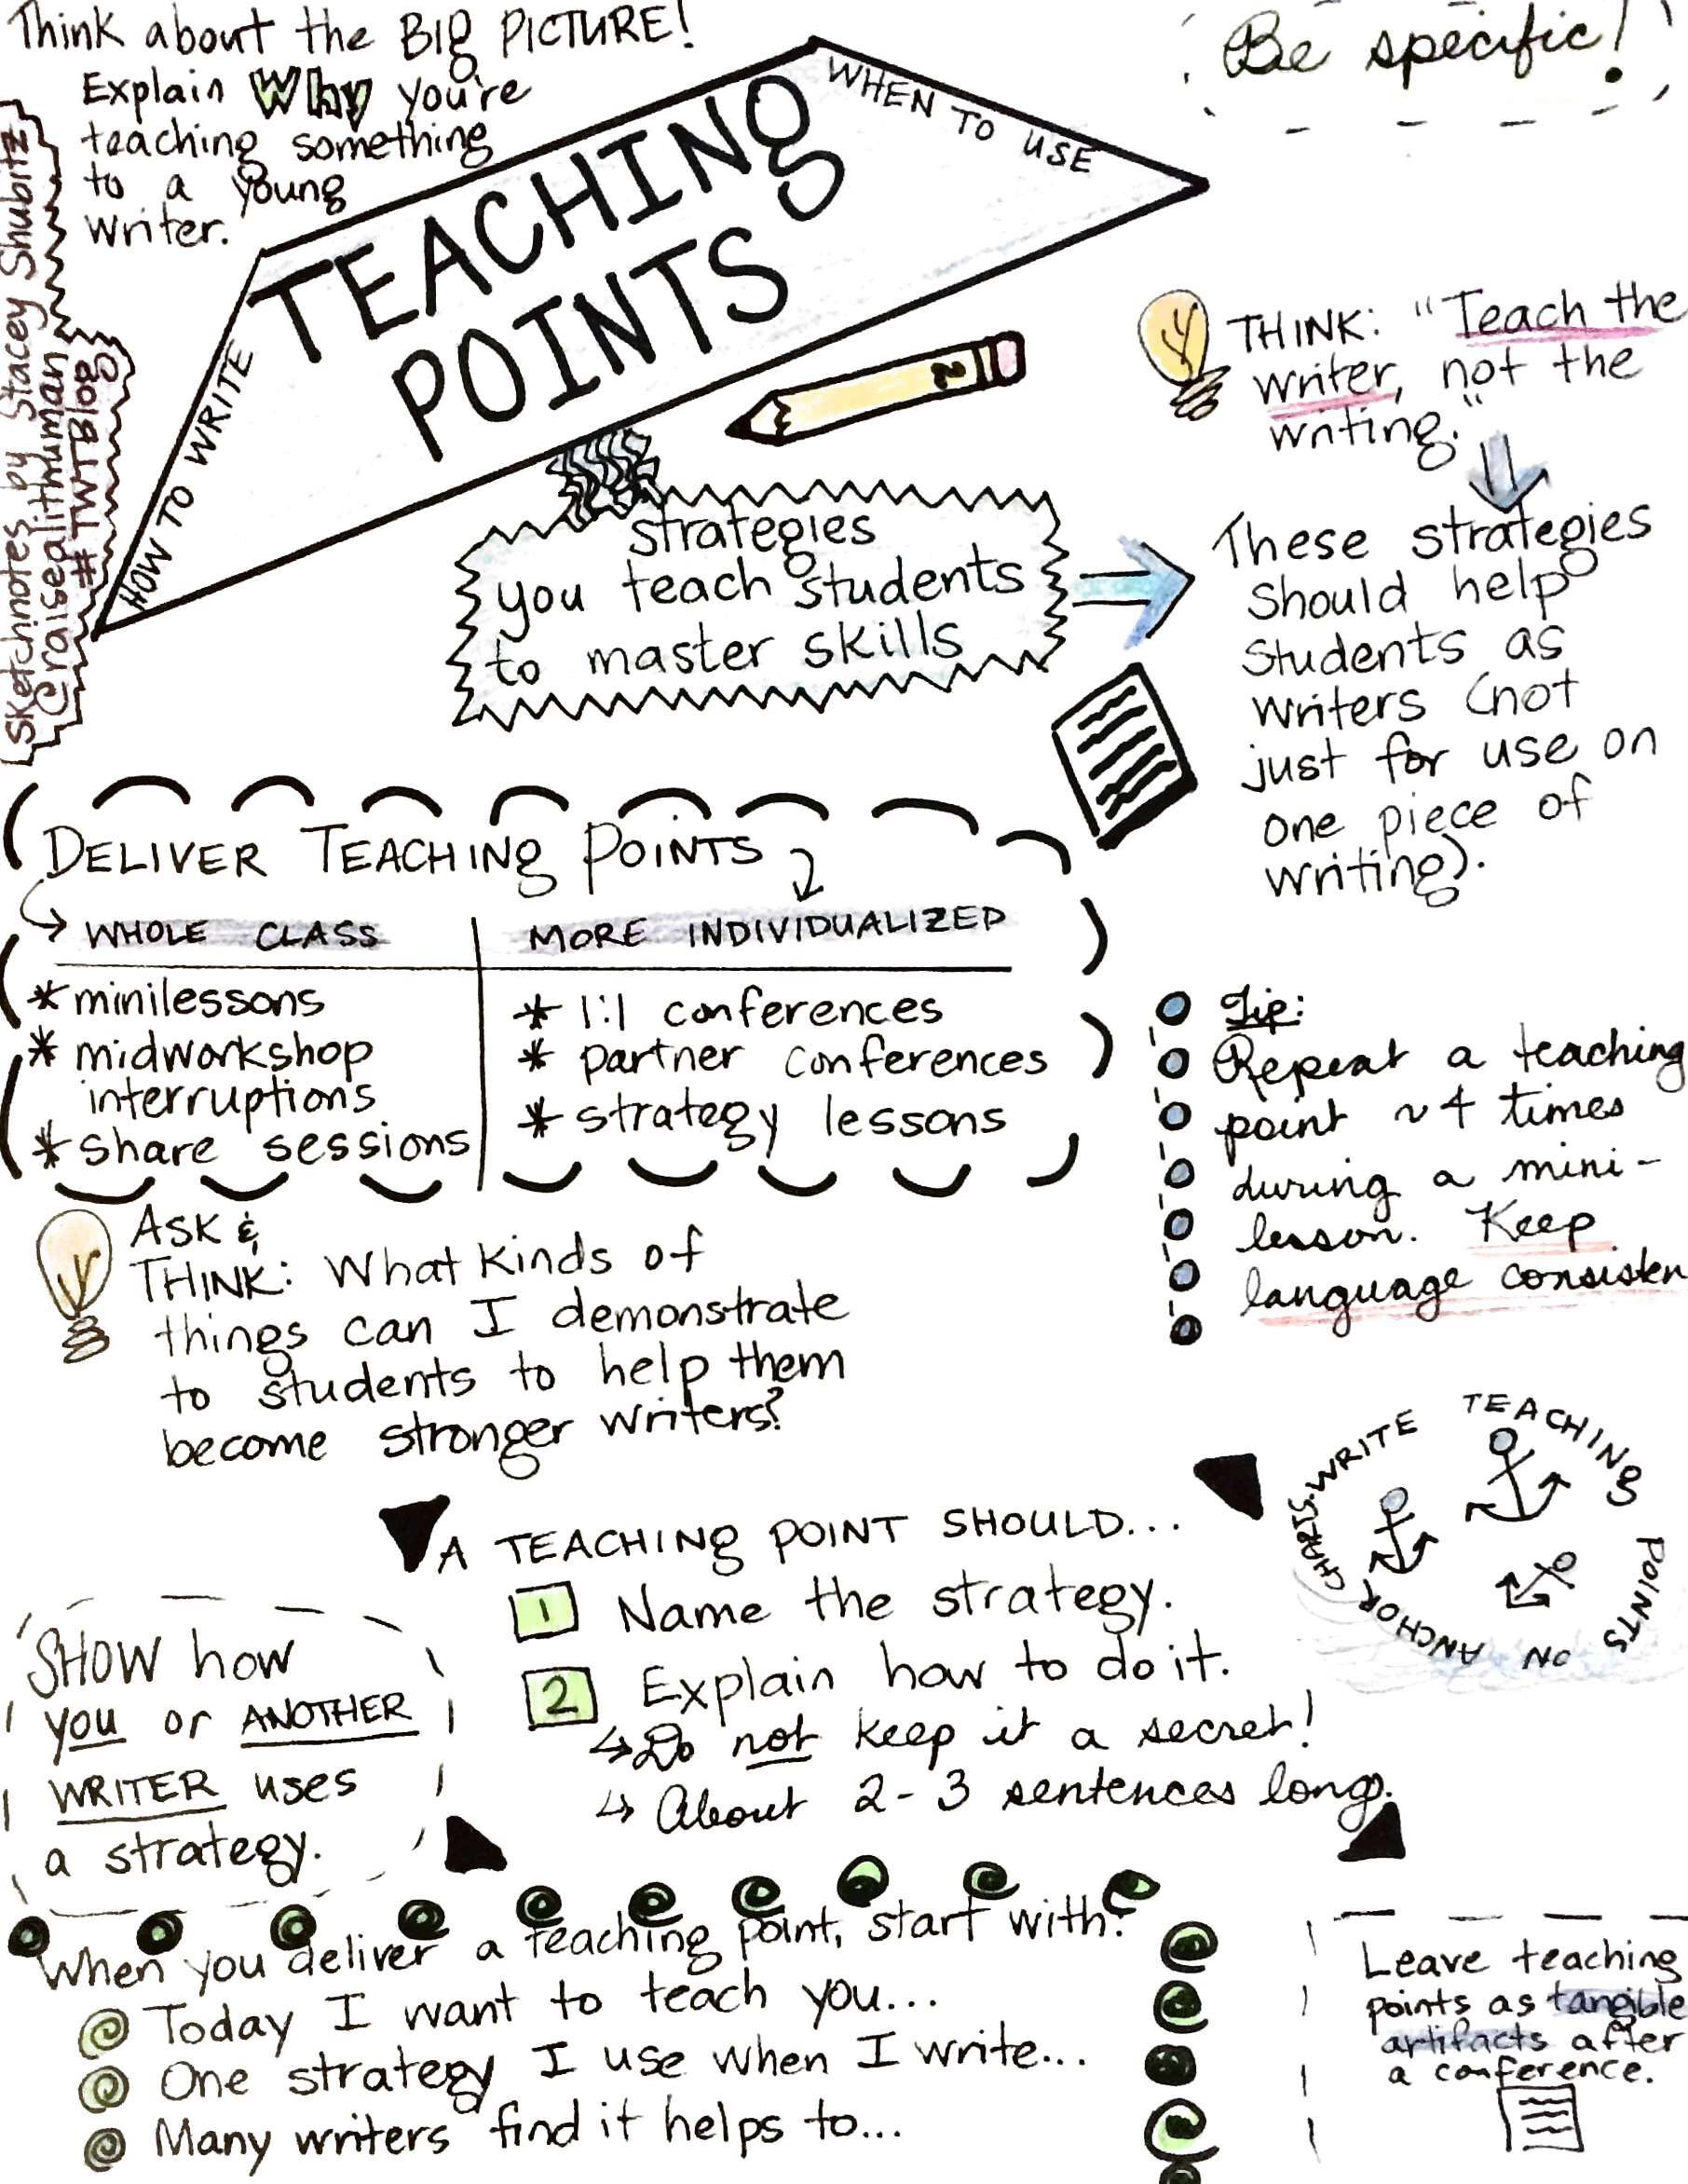 Quick Tips For Writing Teaching Points